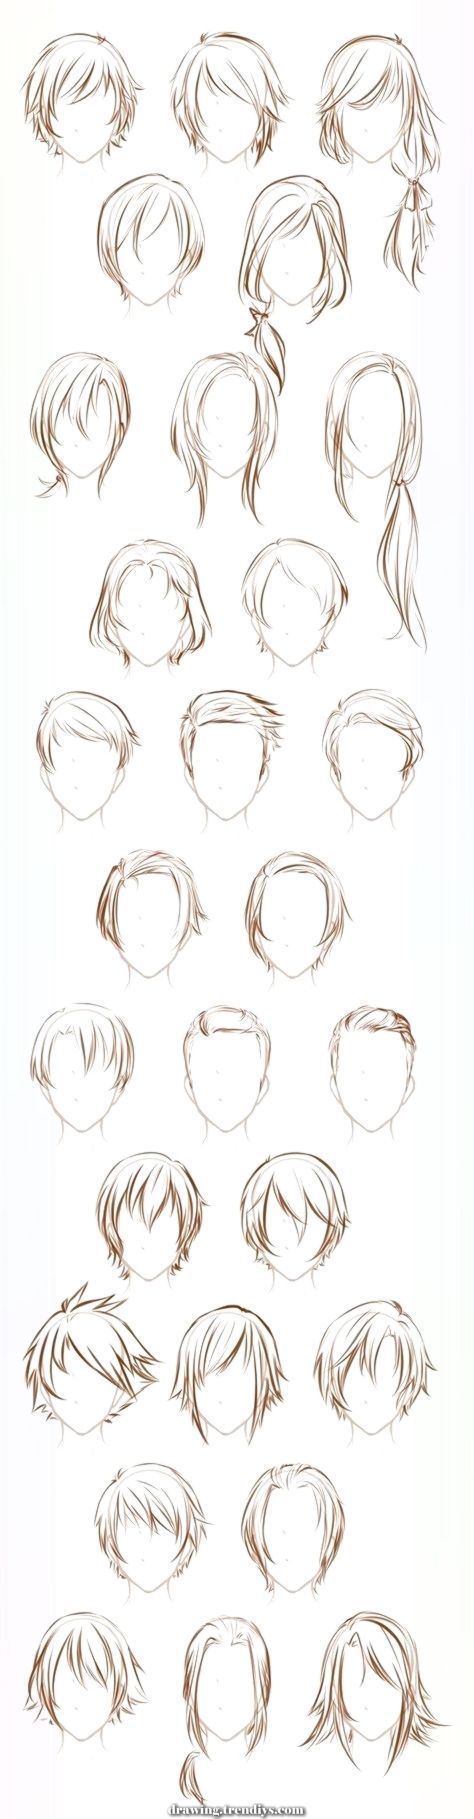 Unique And Creative The Hair Of The Artwork Of Drawing Allusive Tremendous Conce Drawing Sketches Drawing Hair Tutorial How To Draw Hair Anime Hair